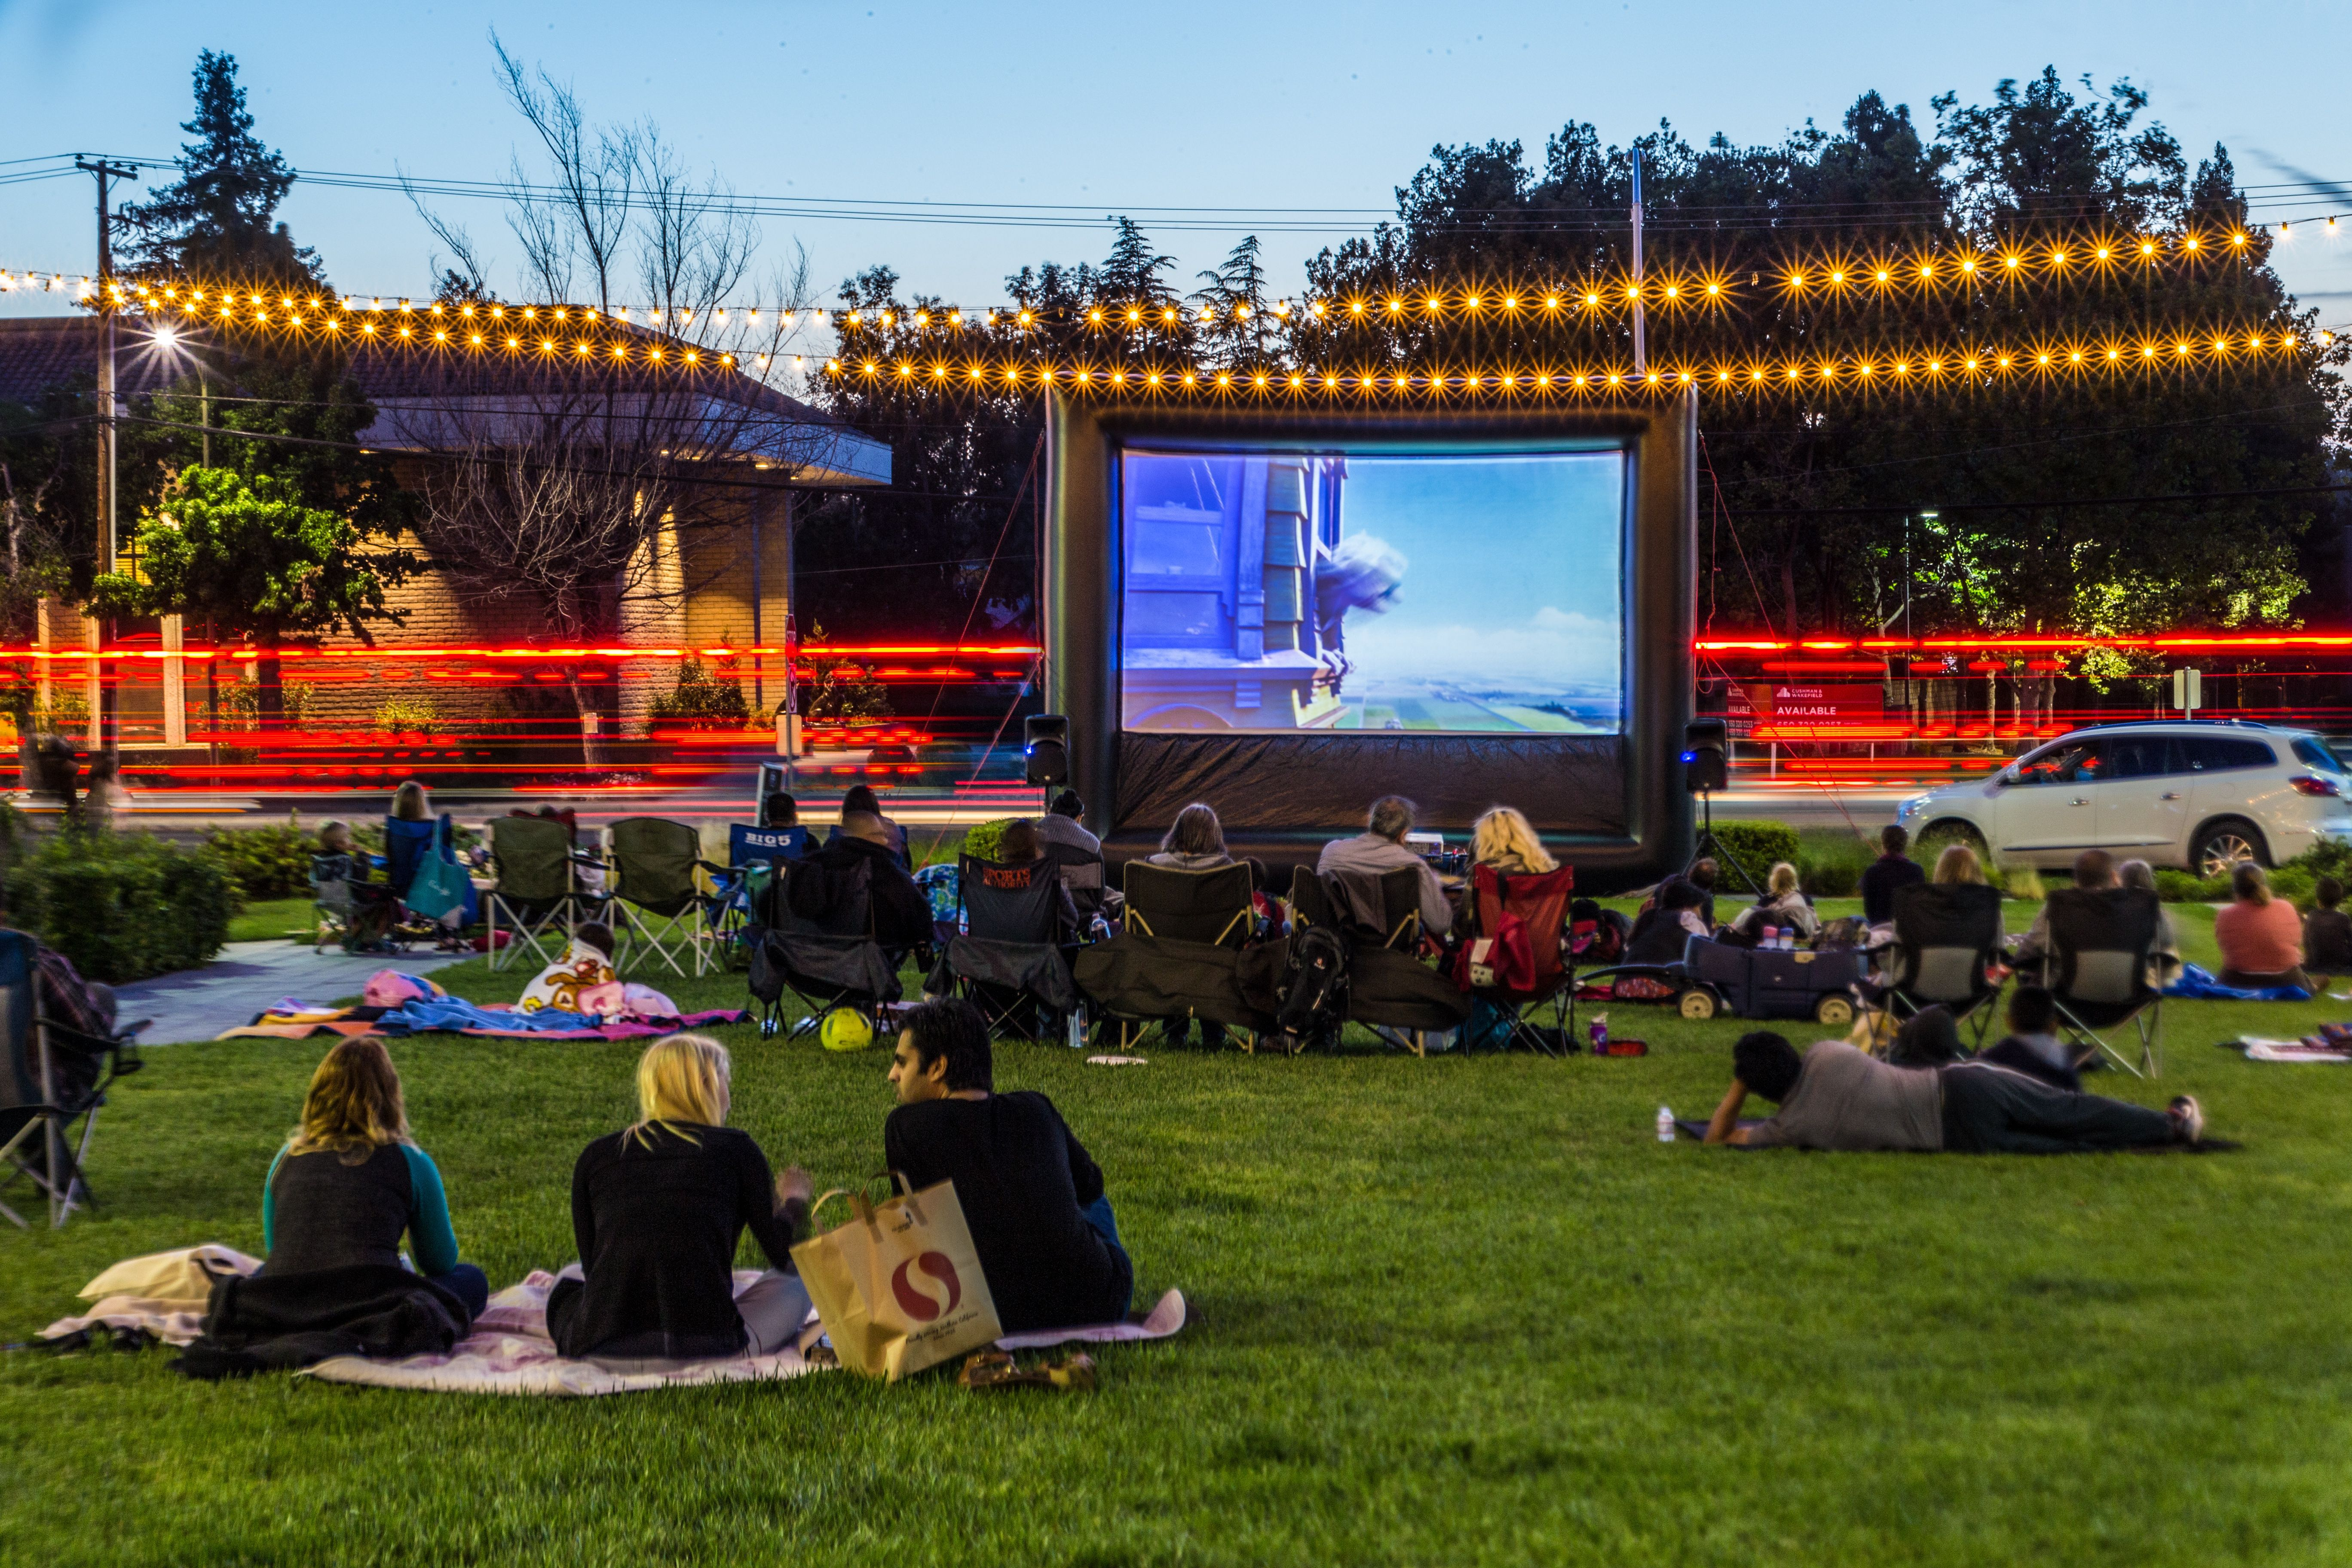 Church family fun night ideas include an outdoor movie for the community on the lawn hosted by FunFlicks®.